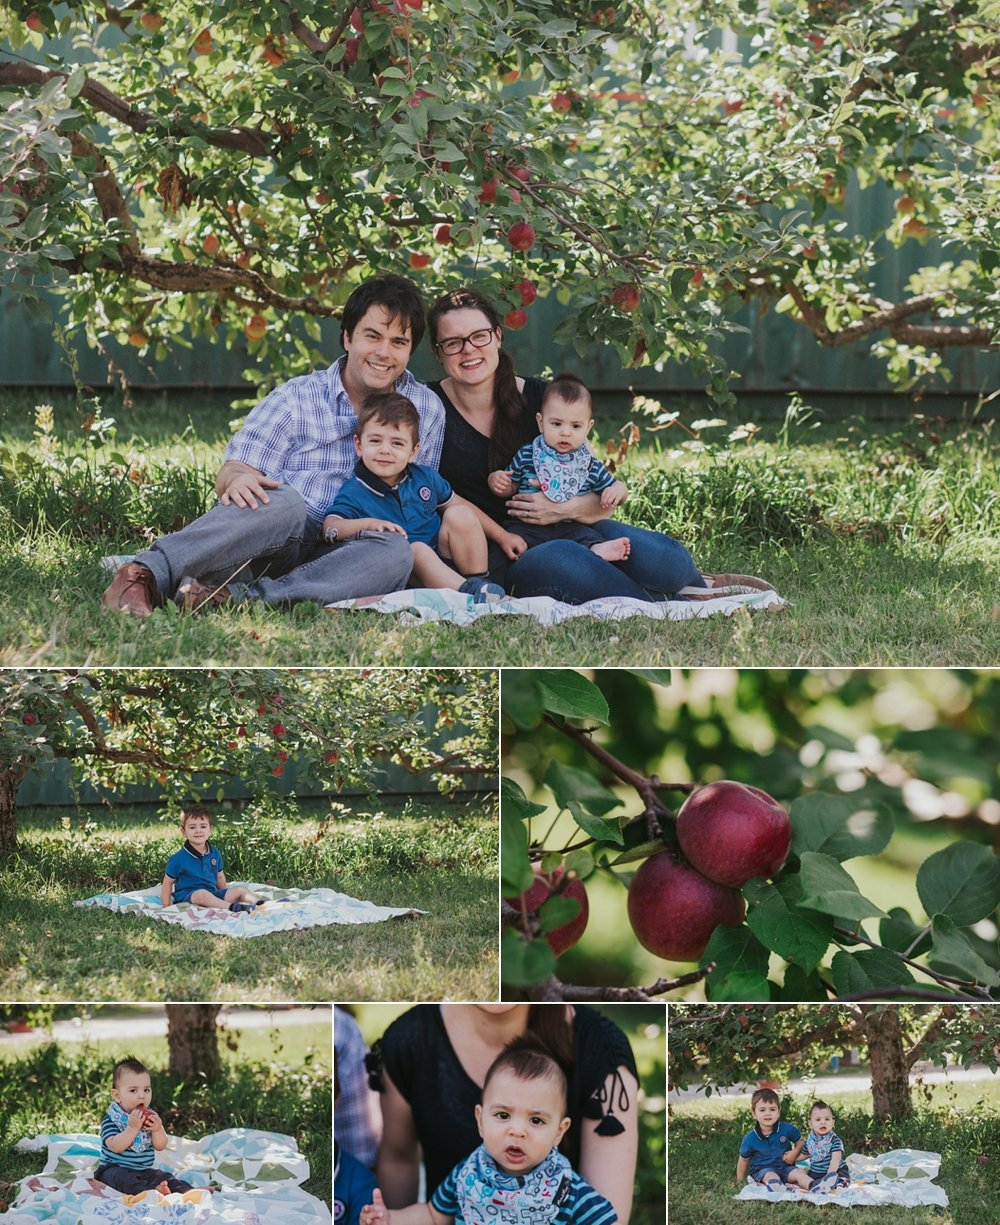 family playing at apple orchard in Georgetown ontario. Family is sitting on a blanket